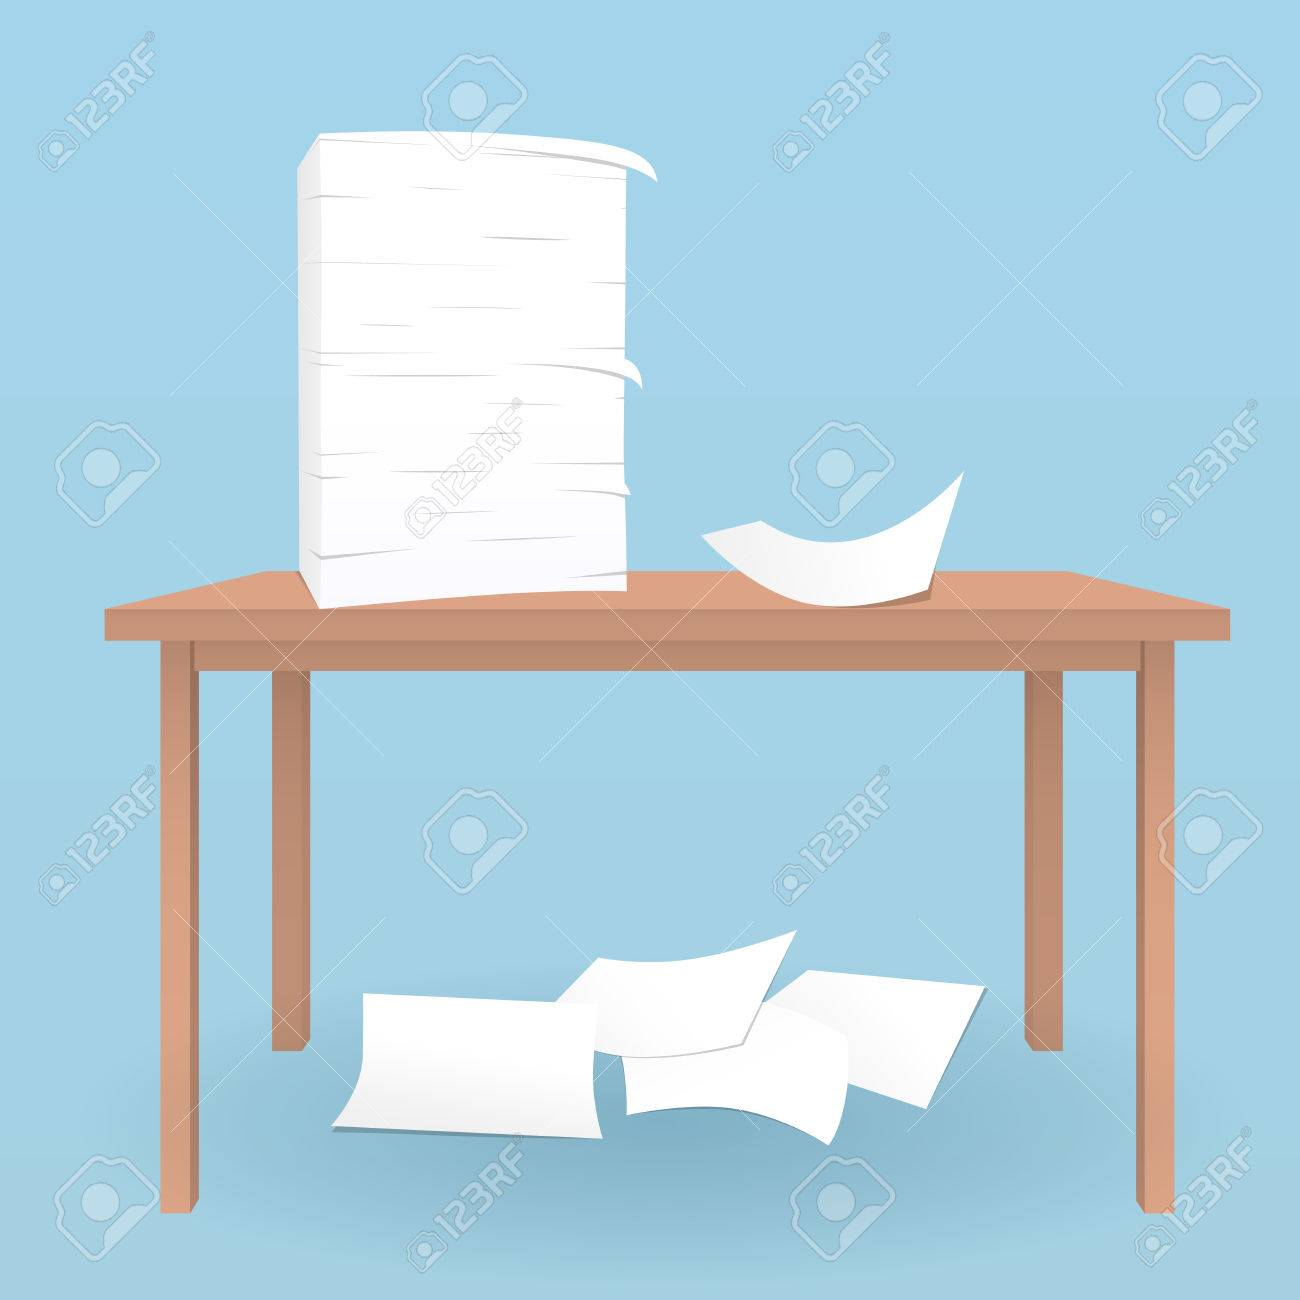 Stack Of White Sheets On Brown Table And Fallen Paper On Blue Royalty Free Cliparts Vectors And Stock Illustration Image 86701046